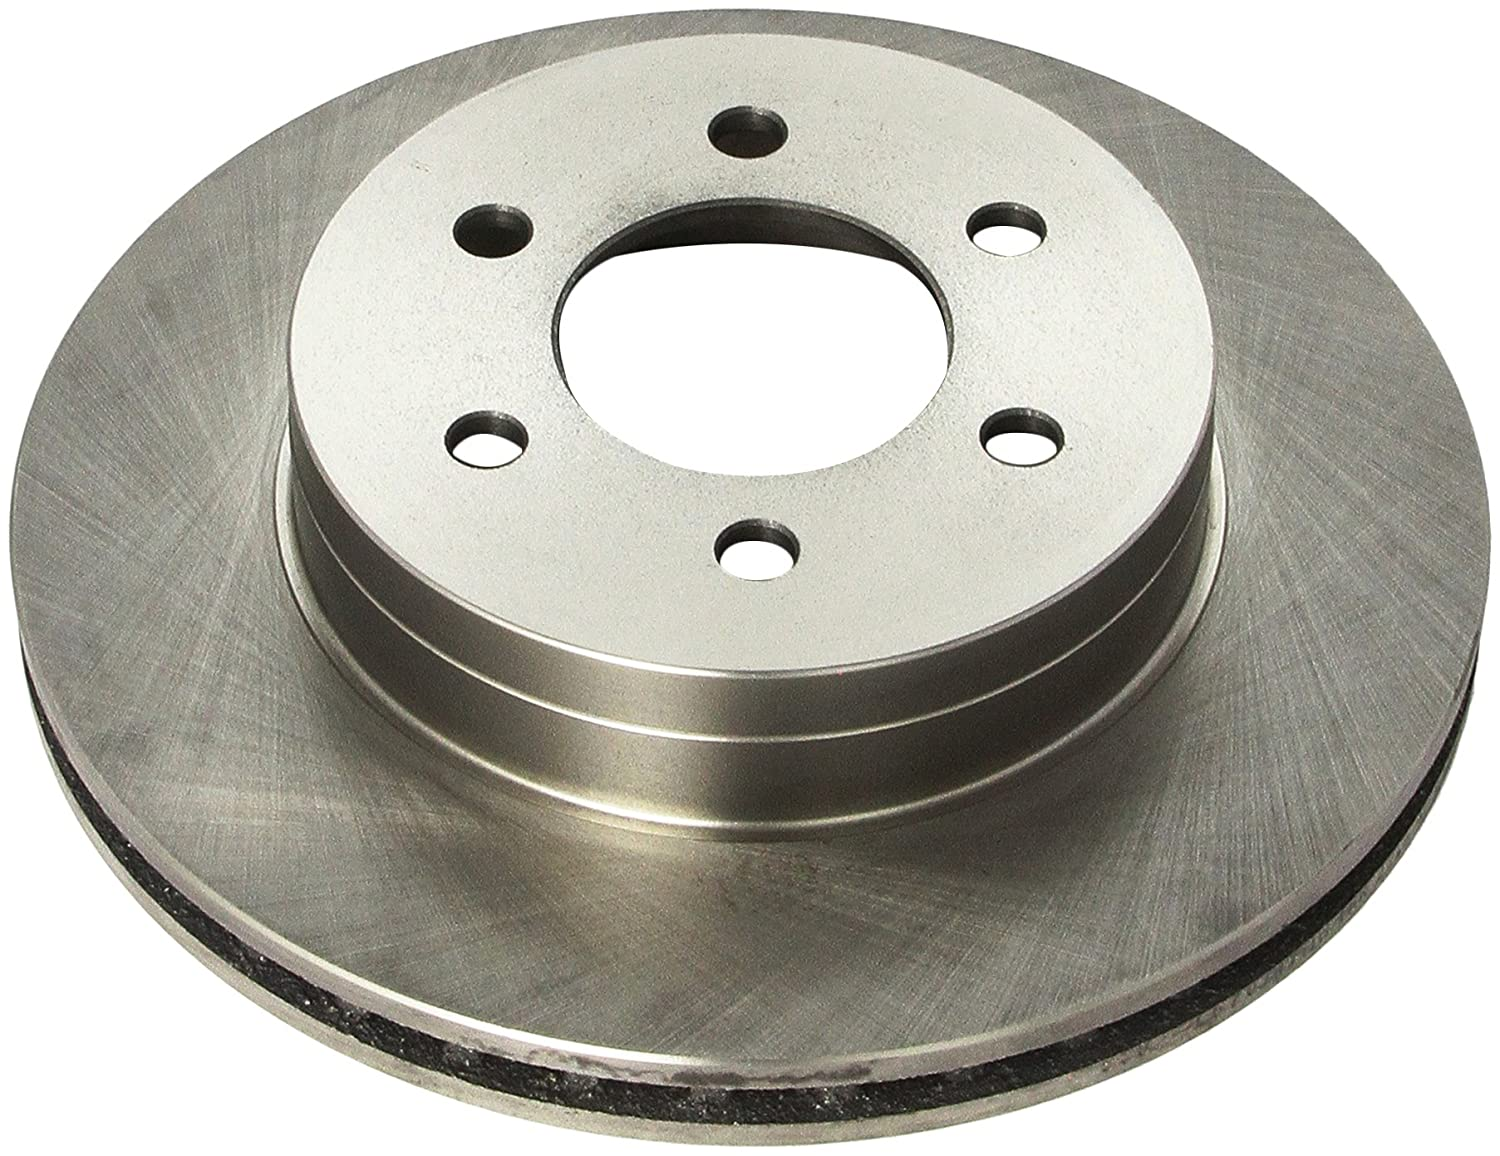 Centric Parts 121.67038 C-Tek Standard Brake Rotor INC.